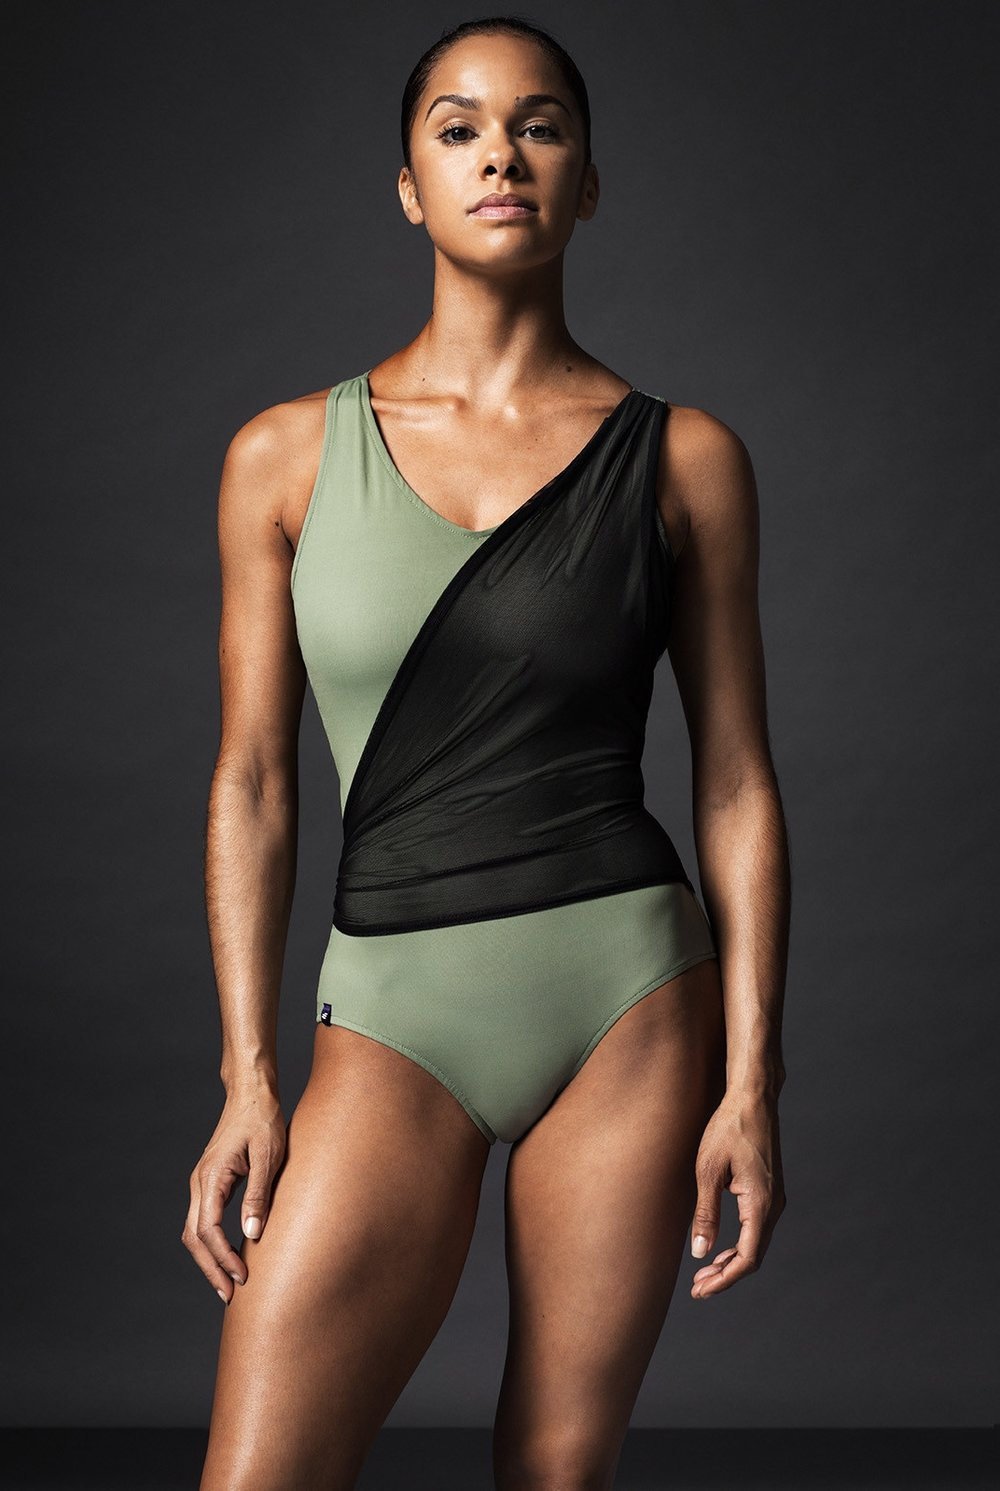 Misty Copeland - First black prima ballerina for the American Ballet Theatre